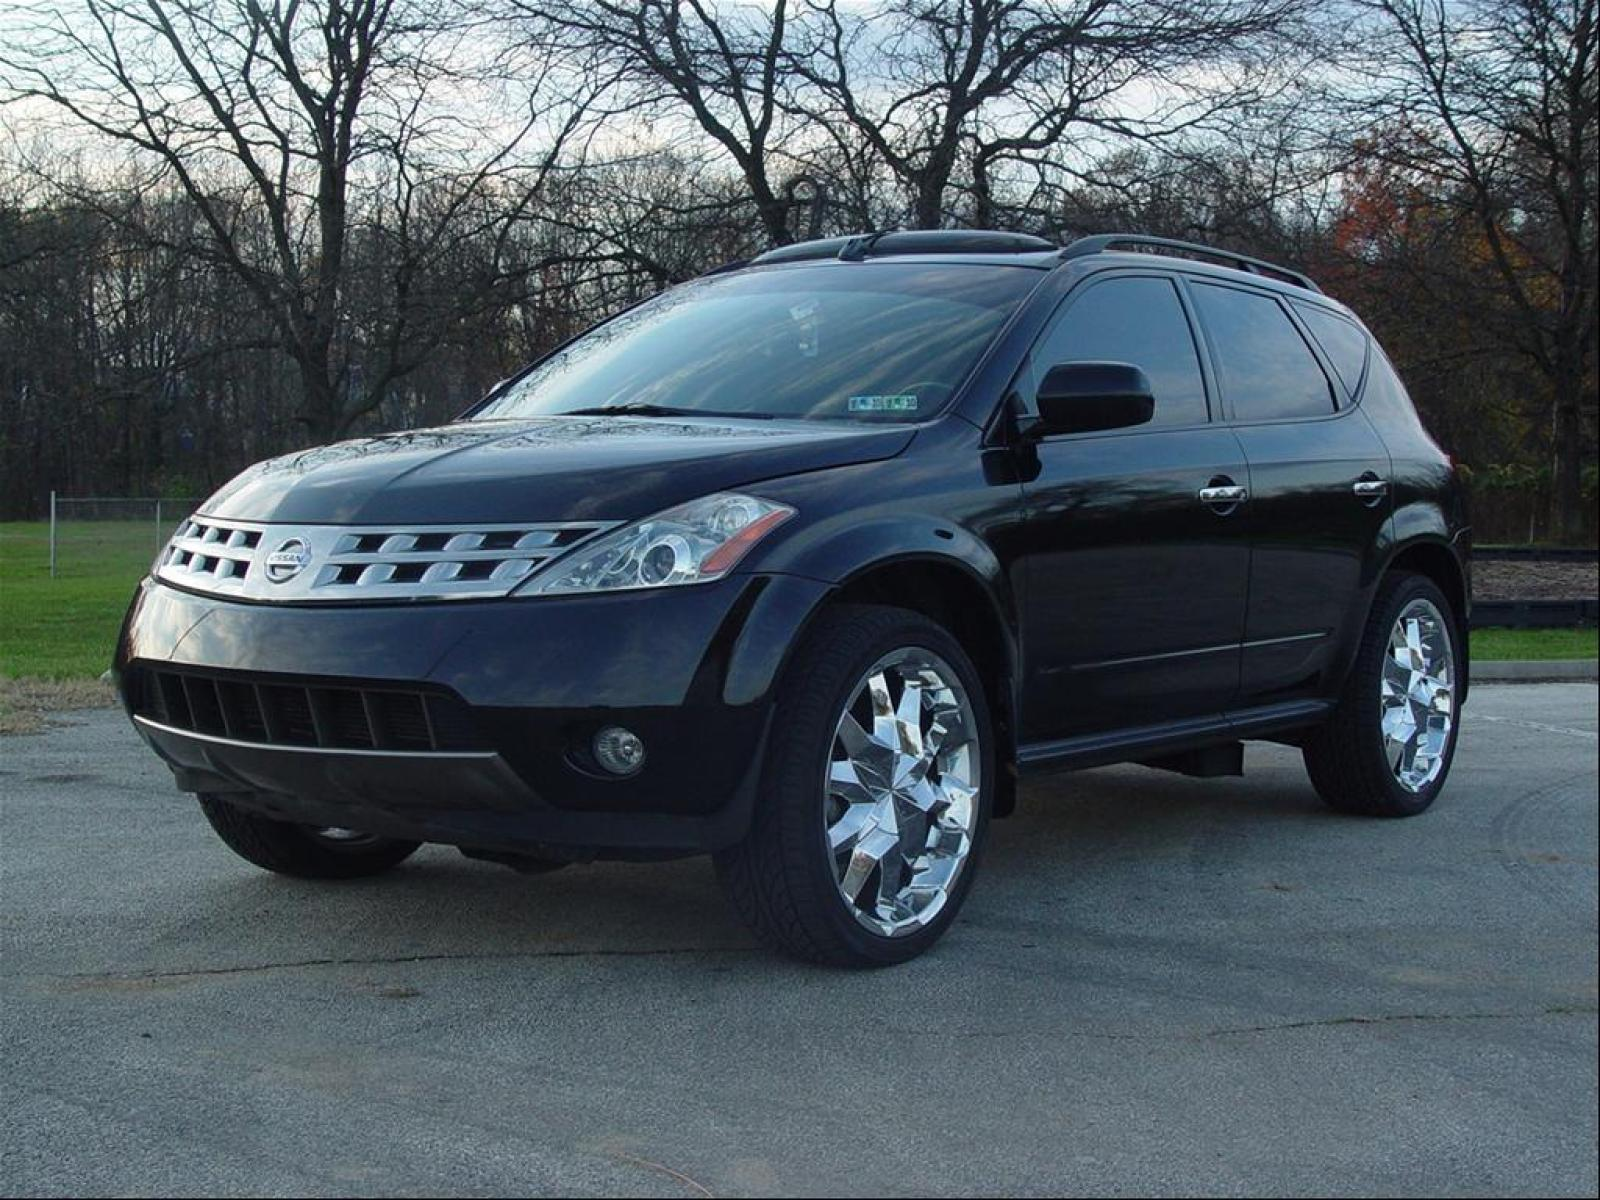 2004 Nissan Murano Information And Photos Zombiedrive